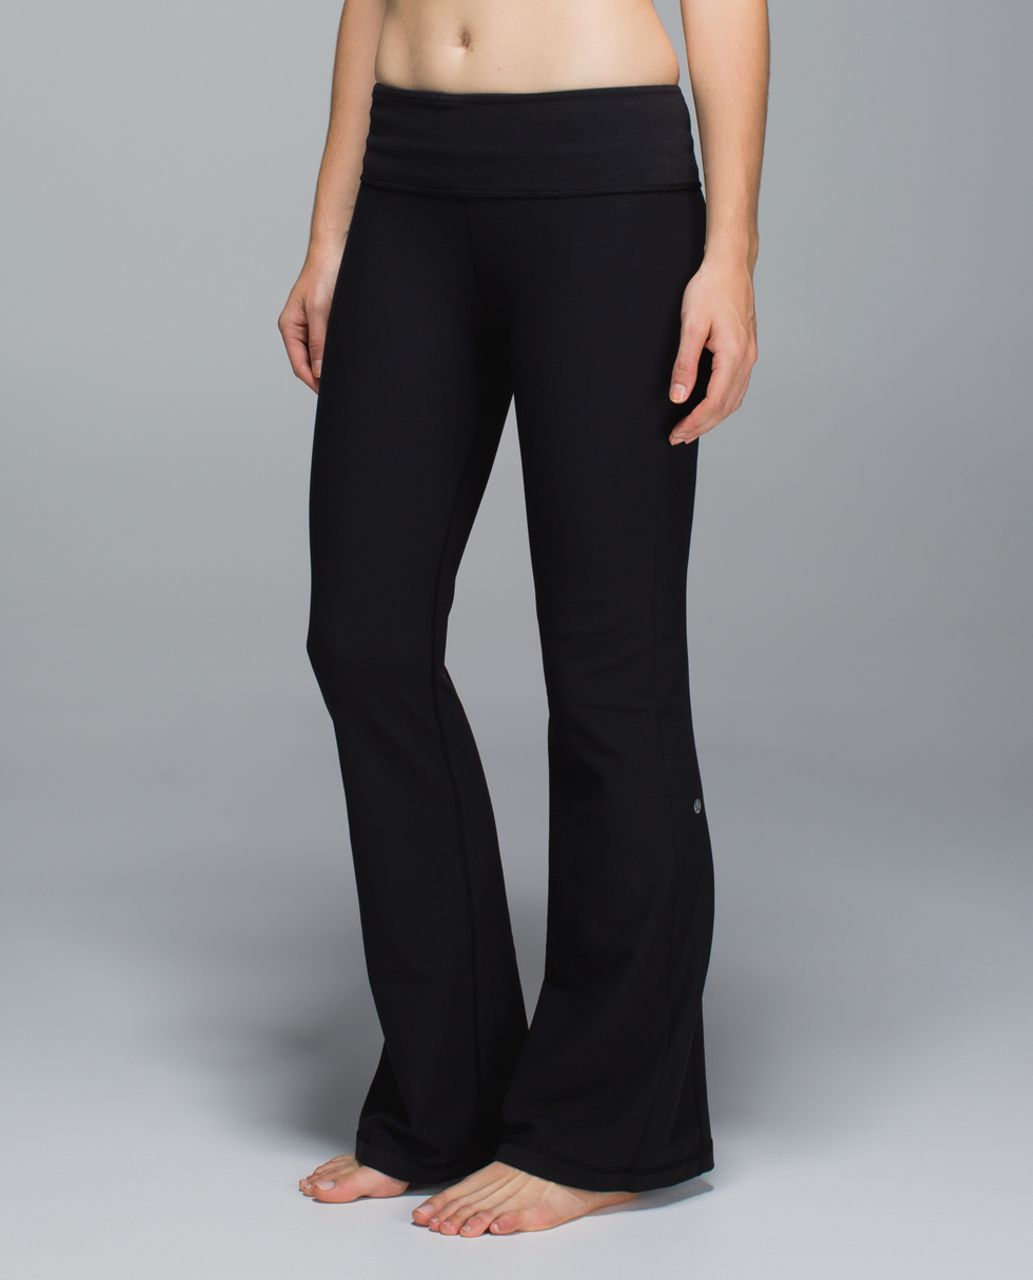 Lululemon Groove Pant *Full-On Luon (Regular) - Black / Boom Juice